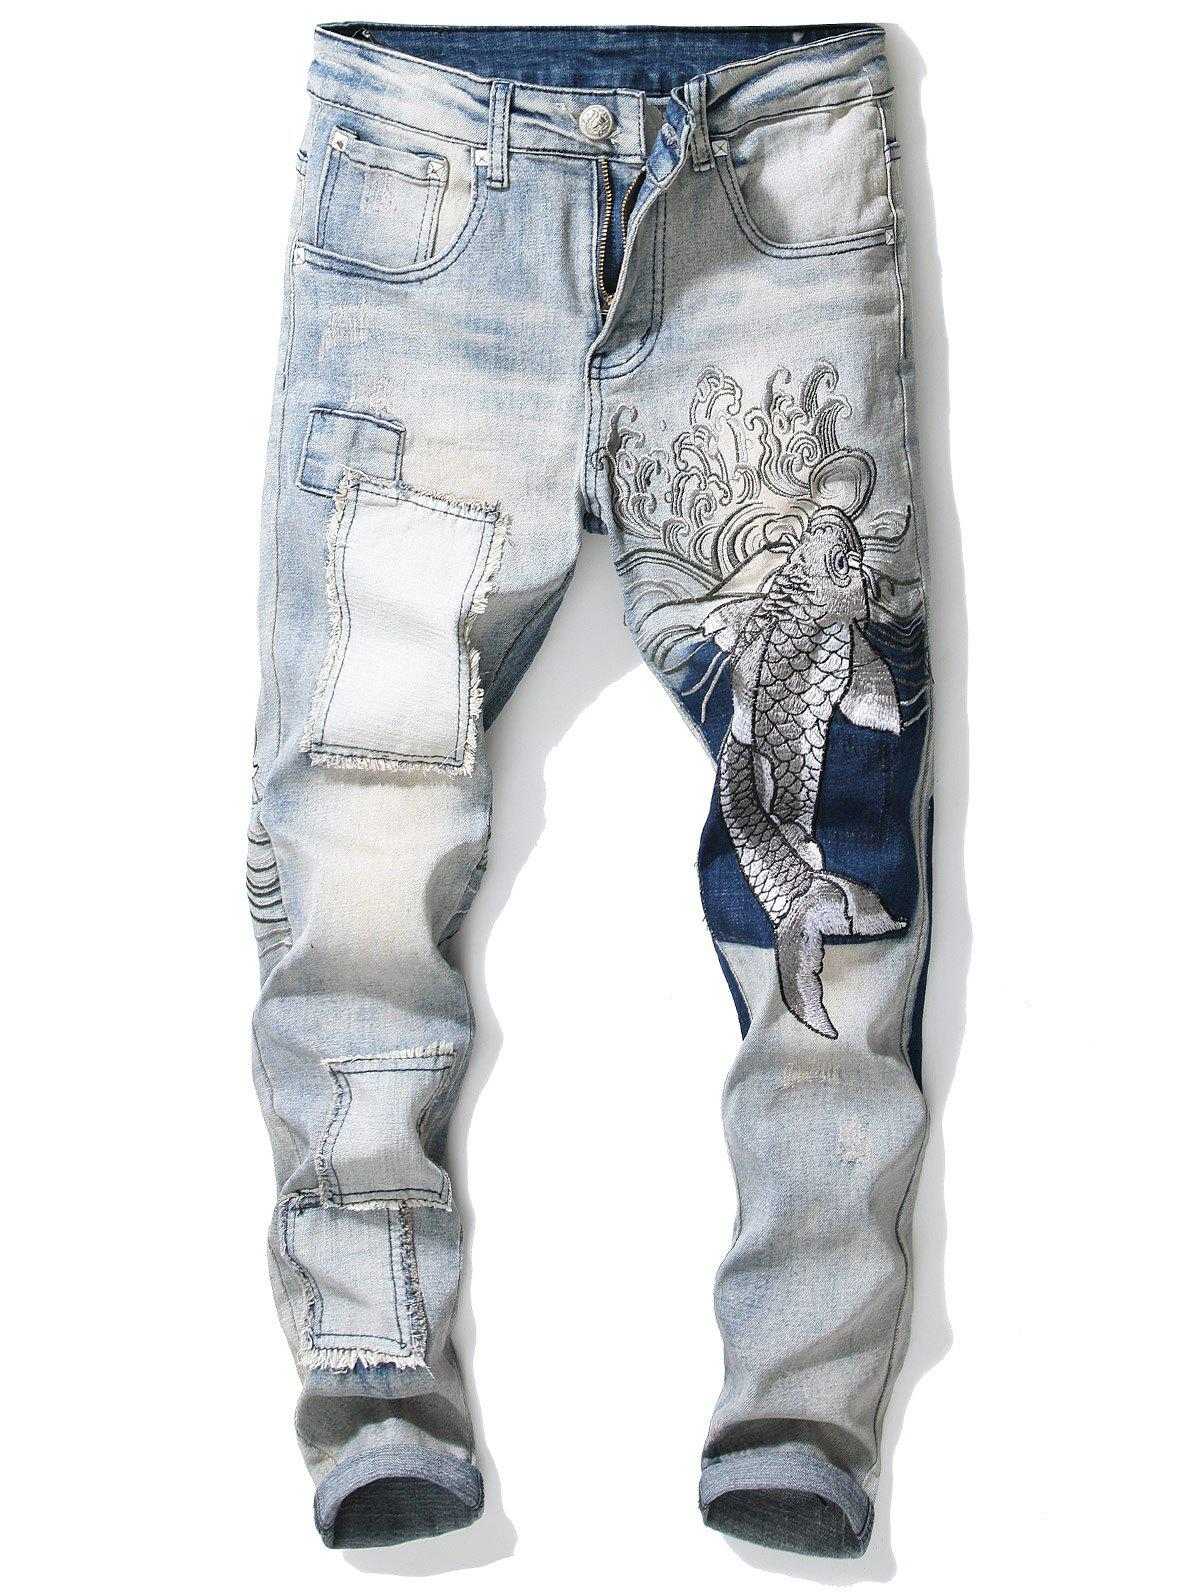 Best Carp Embroidery Stretchy Zipper Jeans